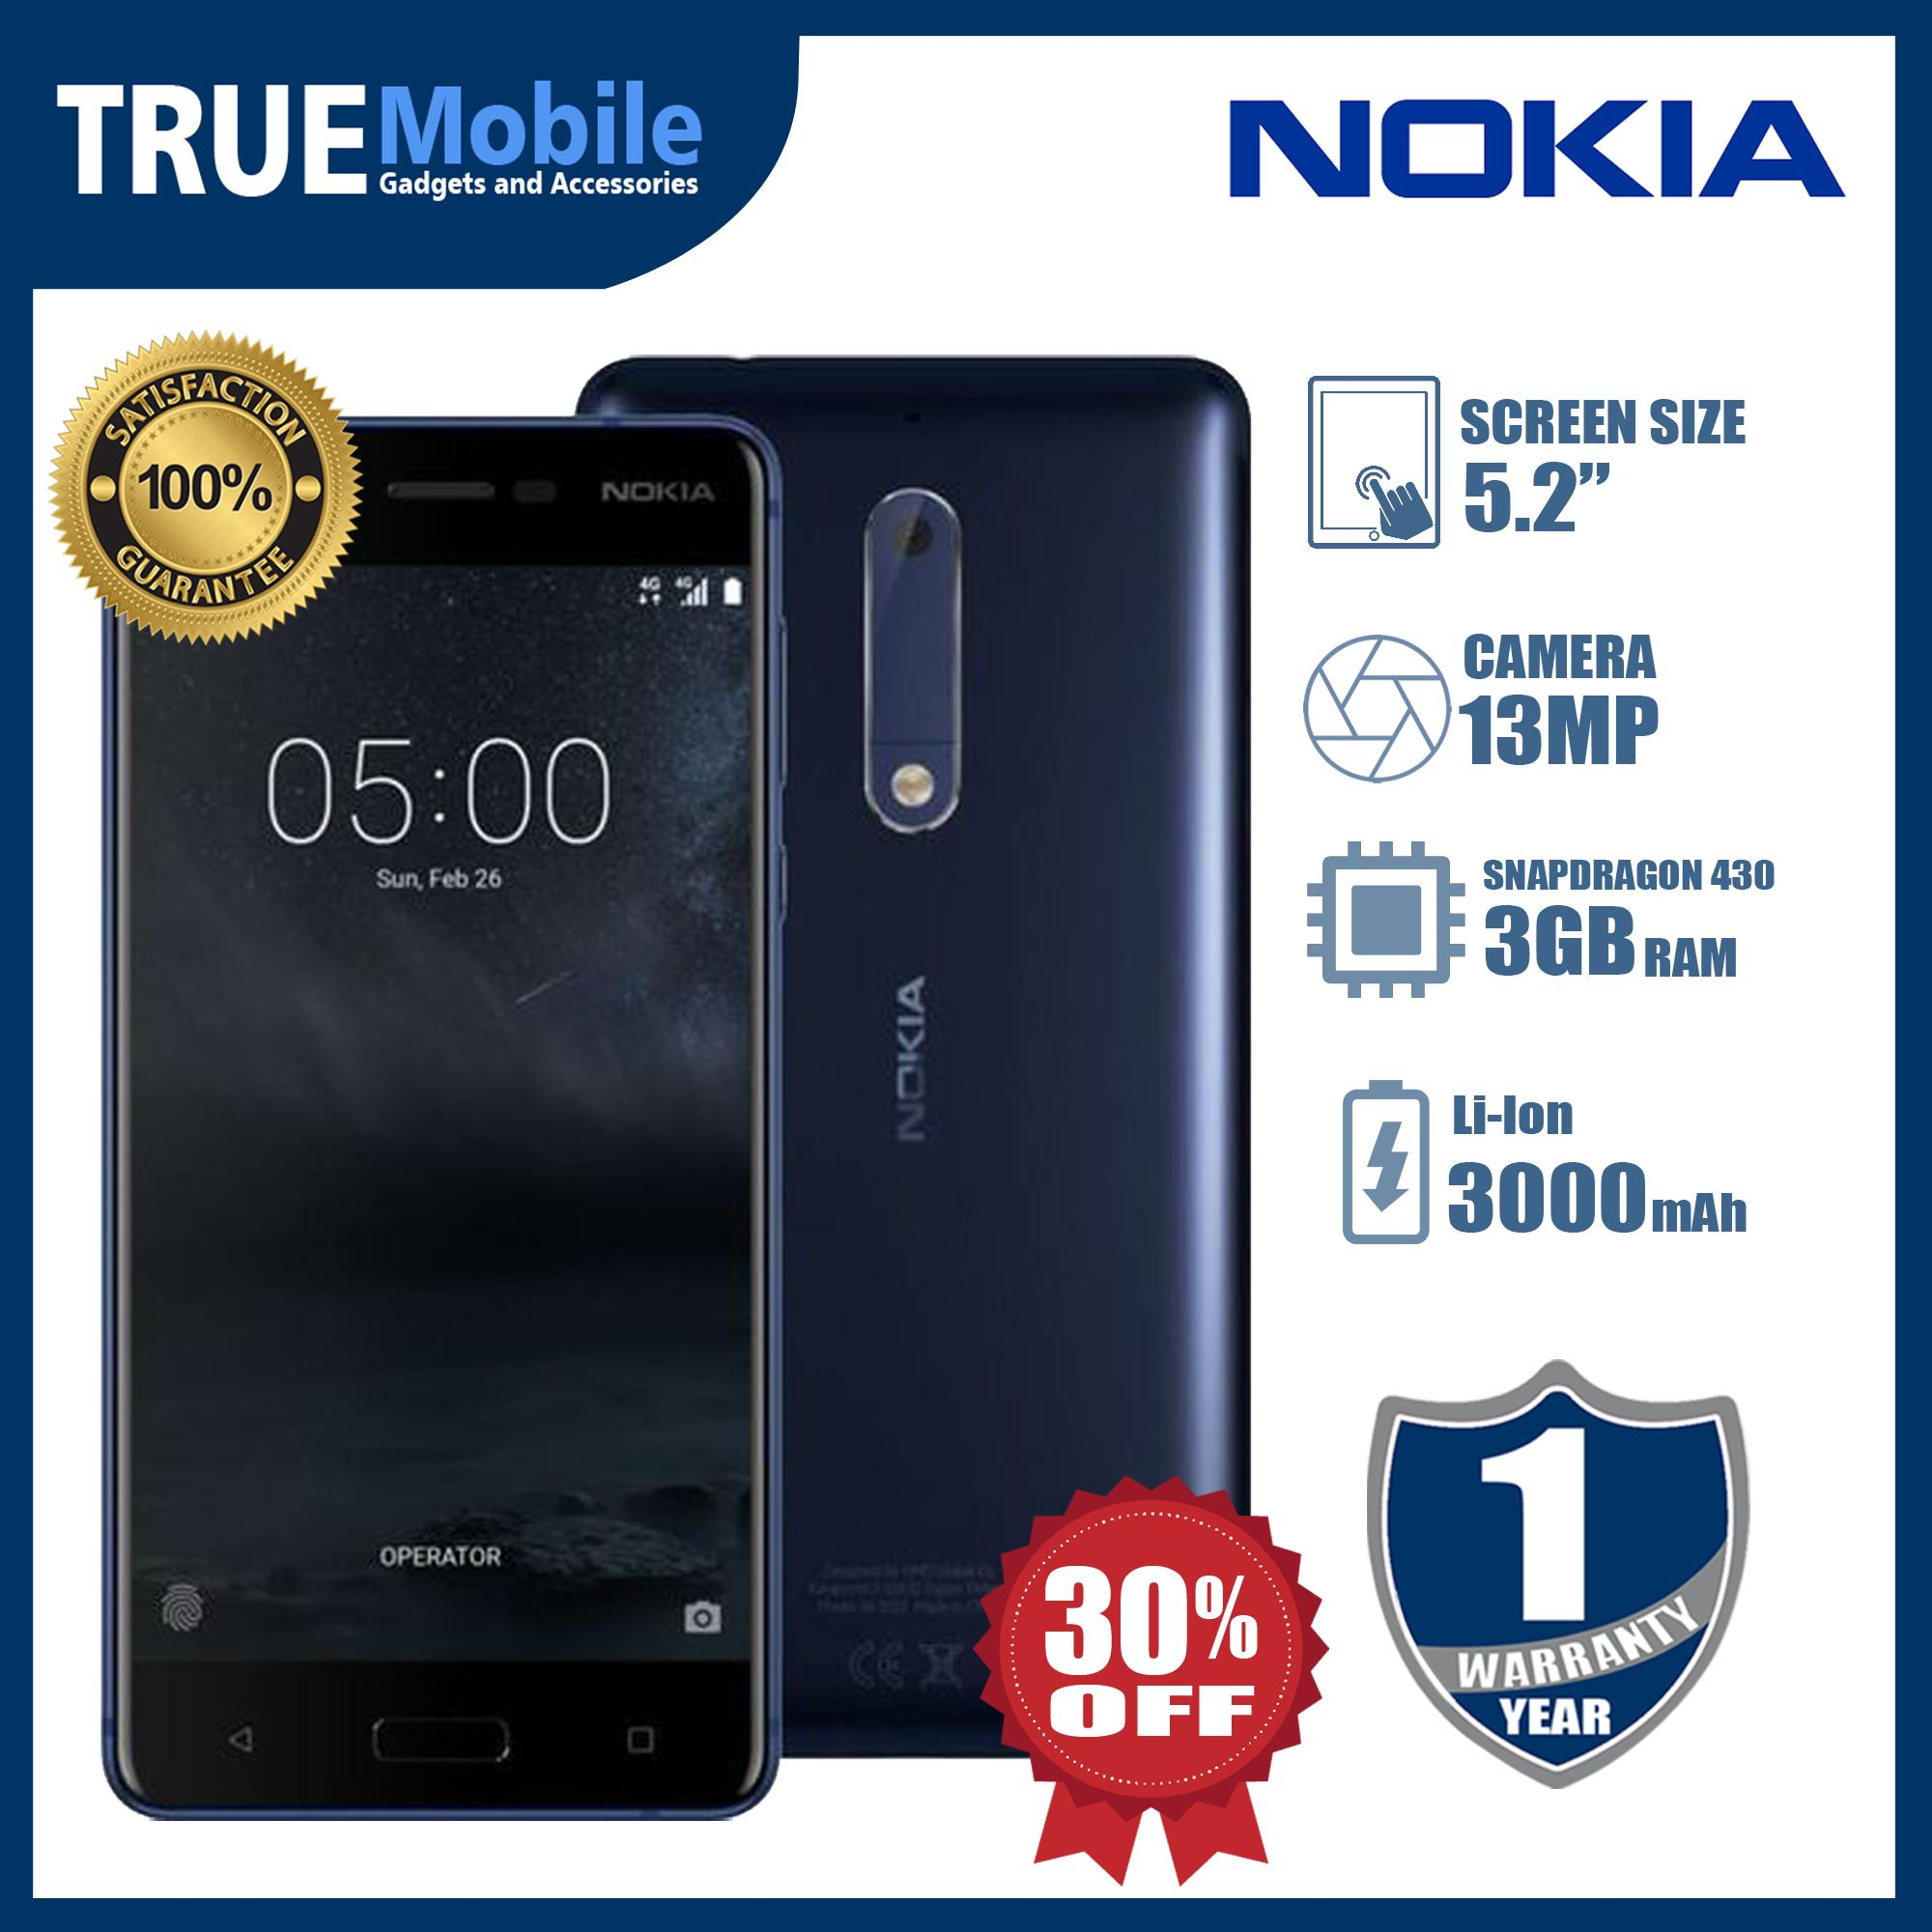 NOKIA 5 ( Android 7 1 1 (Nougat) upgradable to Android 9 0 (Pie)  Non-removable Li-Ion 3000 mAh battery )